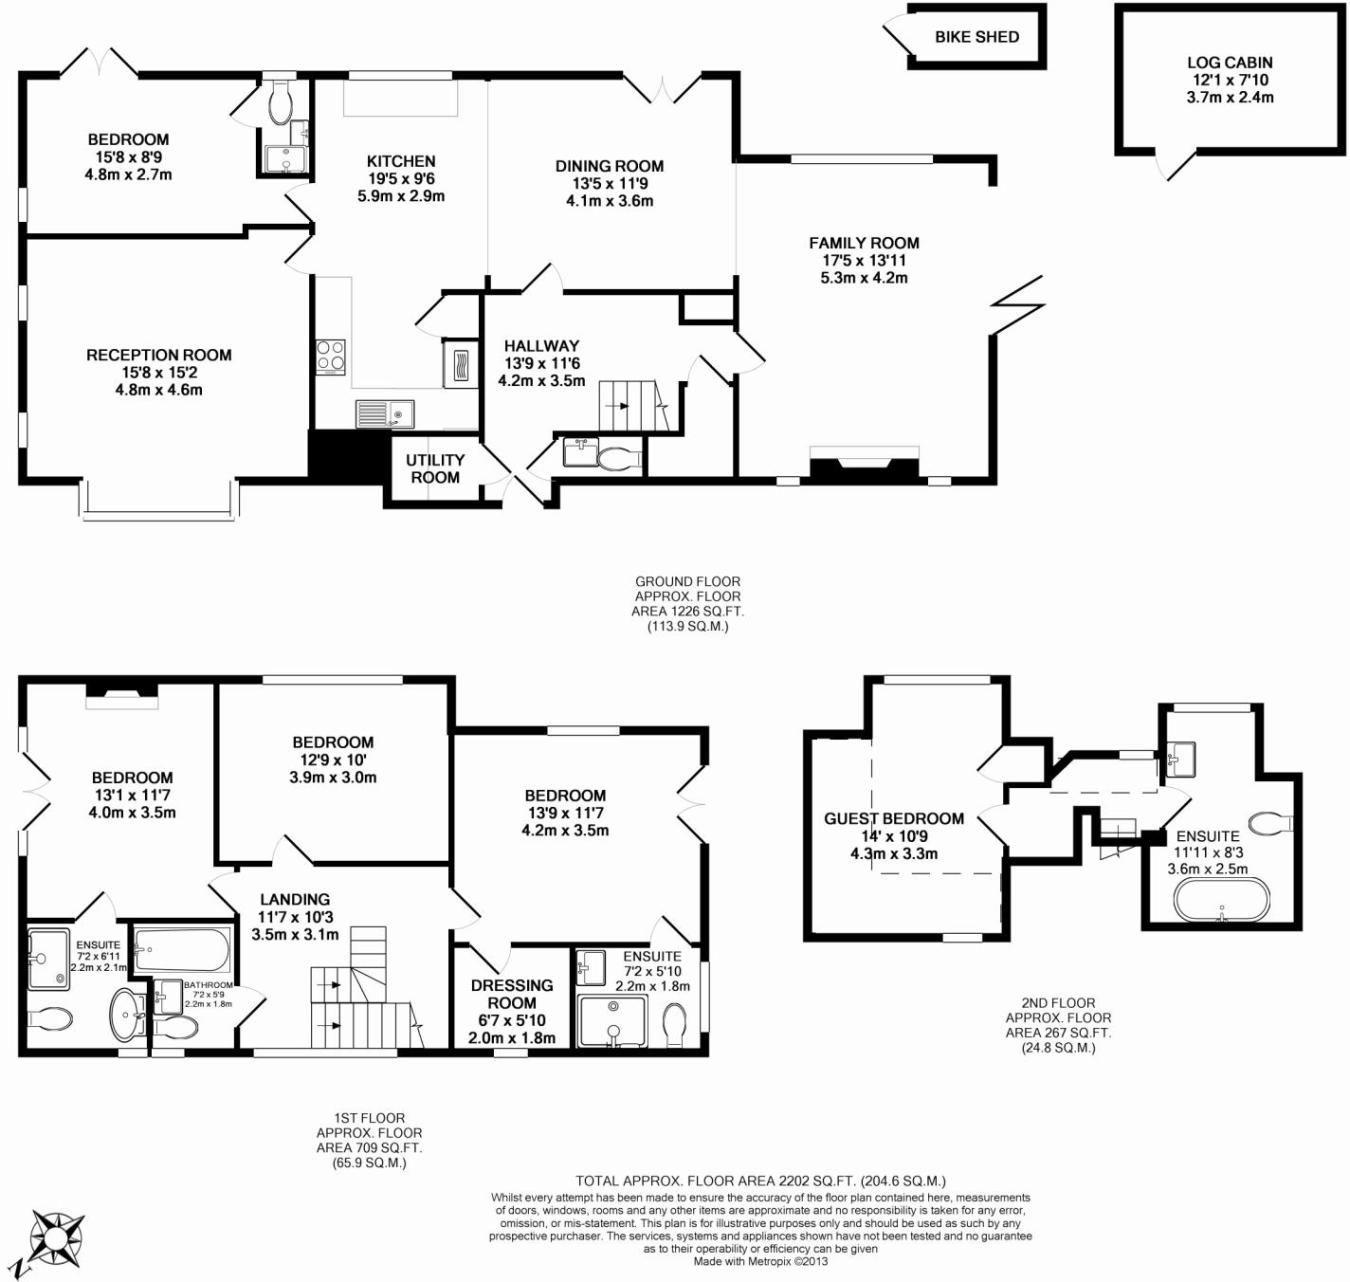 Zoellas house floor plans yahoo image search results for Floor plan search